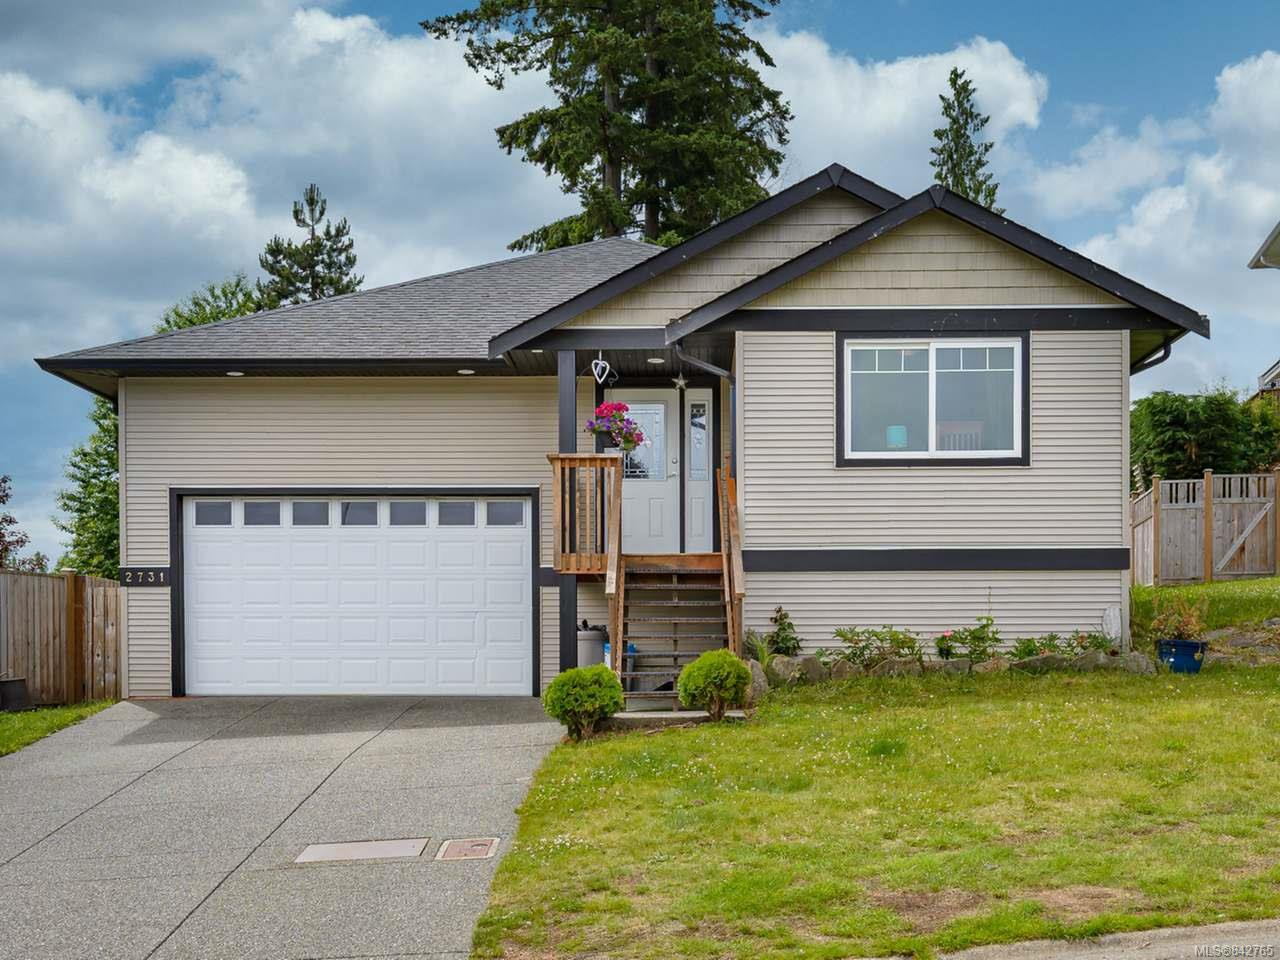 Main Photo: 2731 Rydal Ave in CUMBERLAND: CV Cumberland Single Family Detached for sale (Comox Valley)  : MLS®# 842765